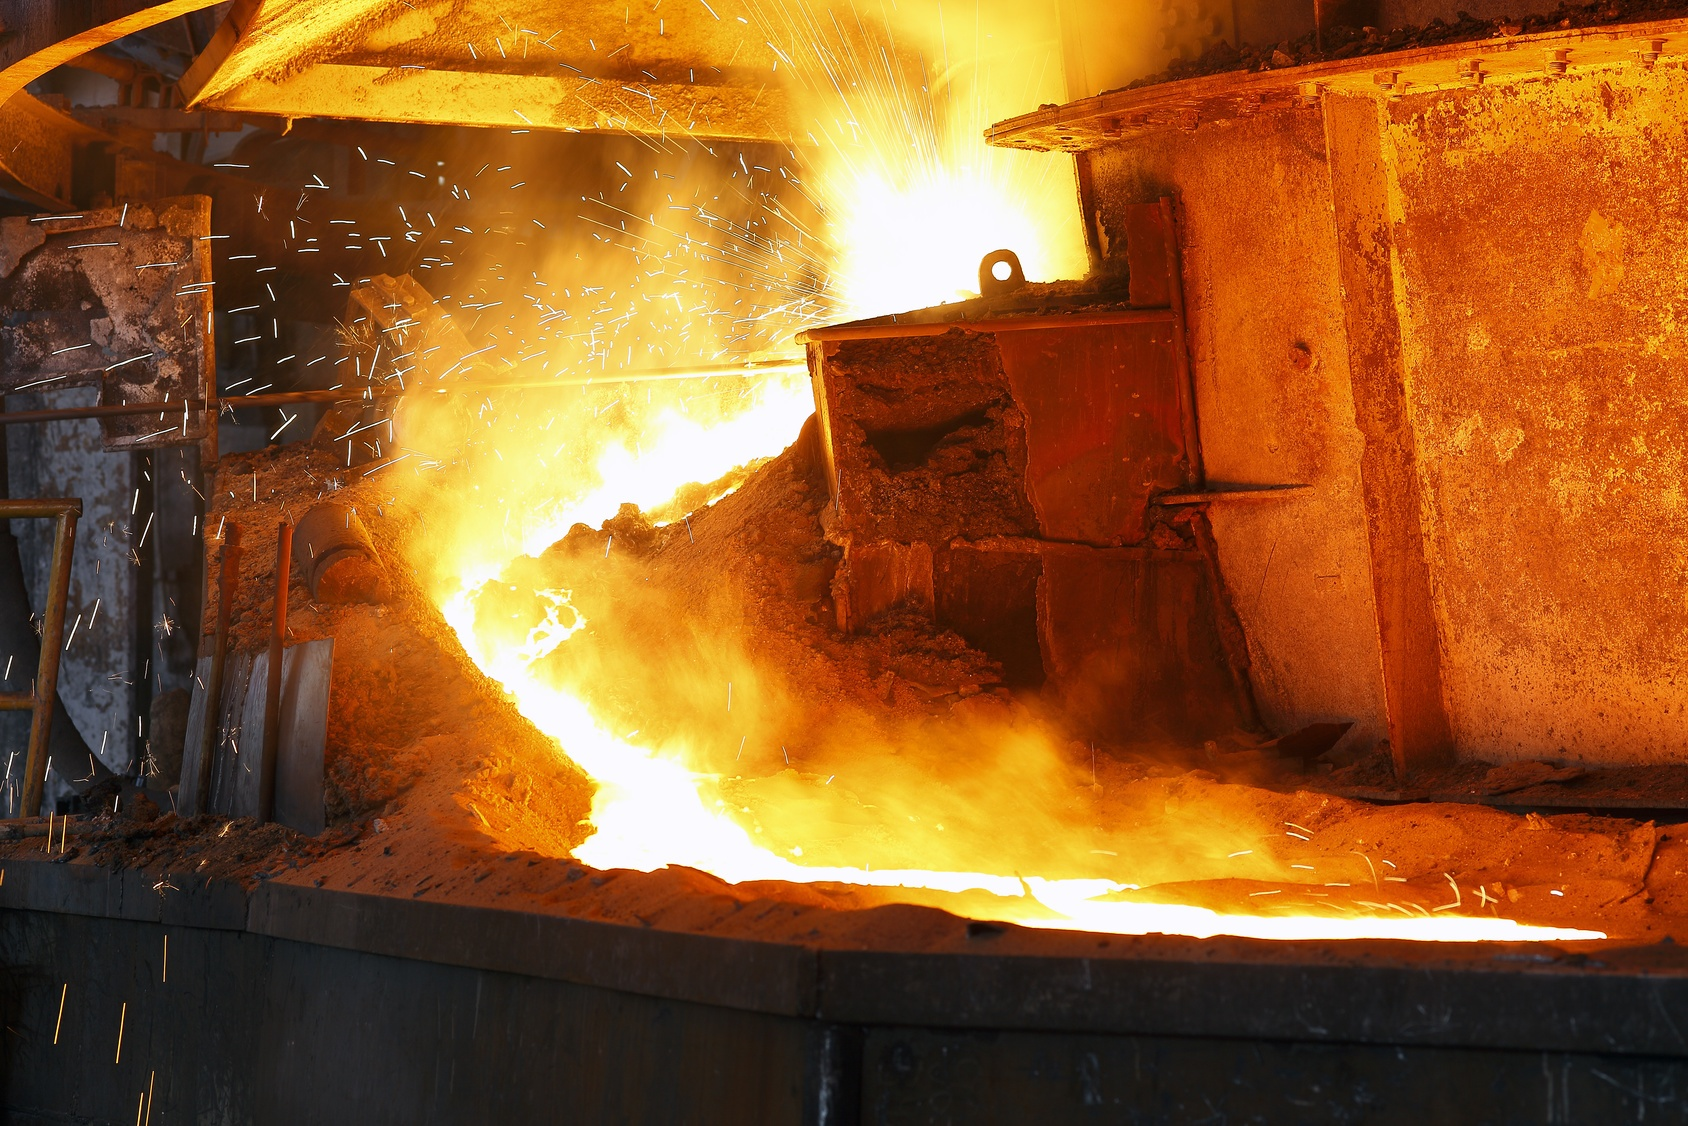 This river of molten metal would be an example of liquefied, or melted, steel.